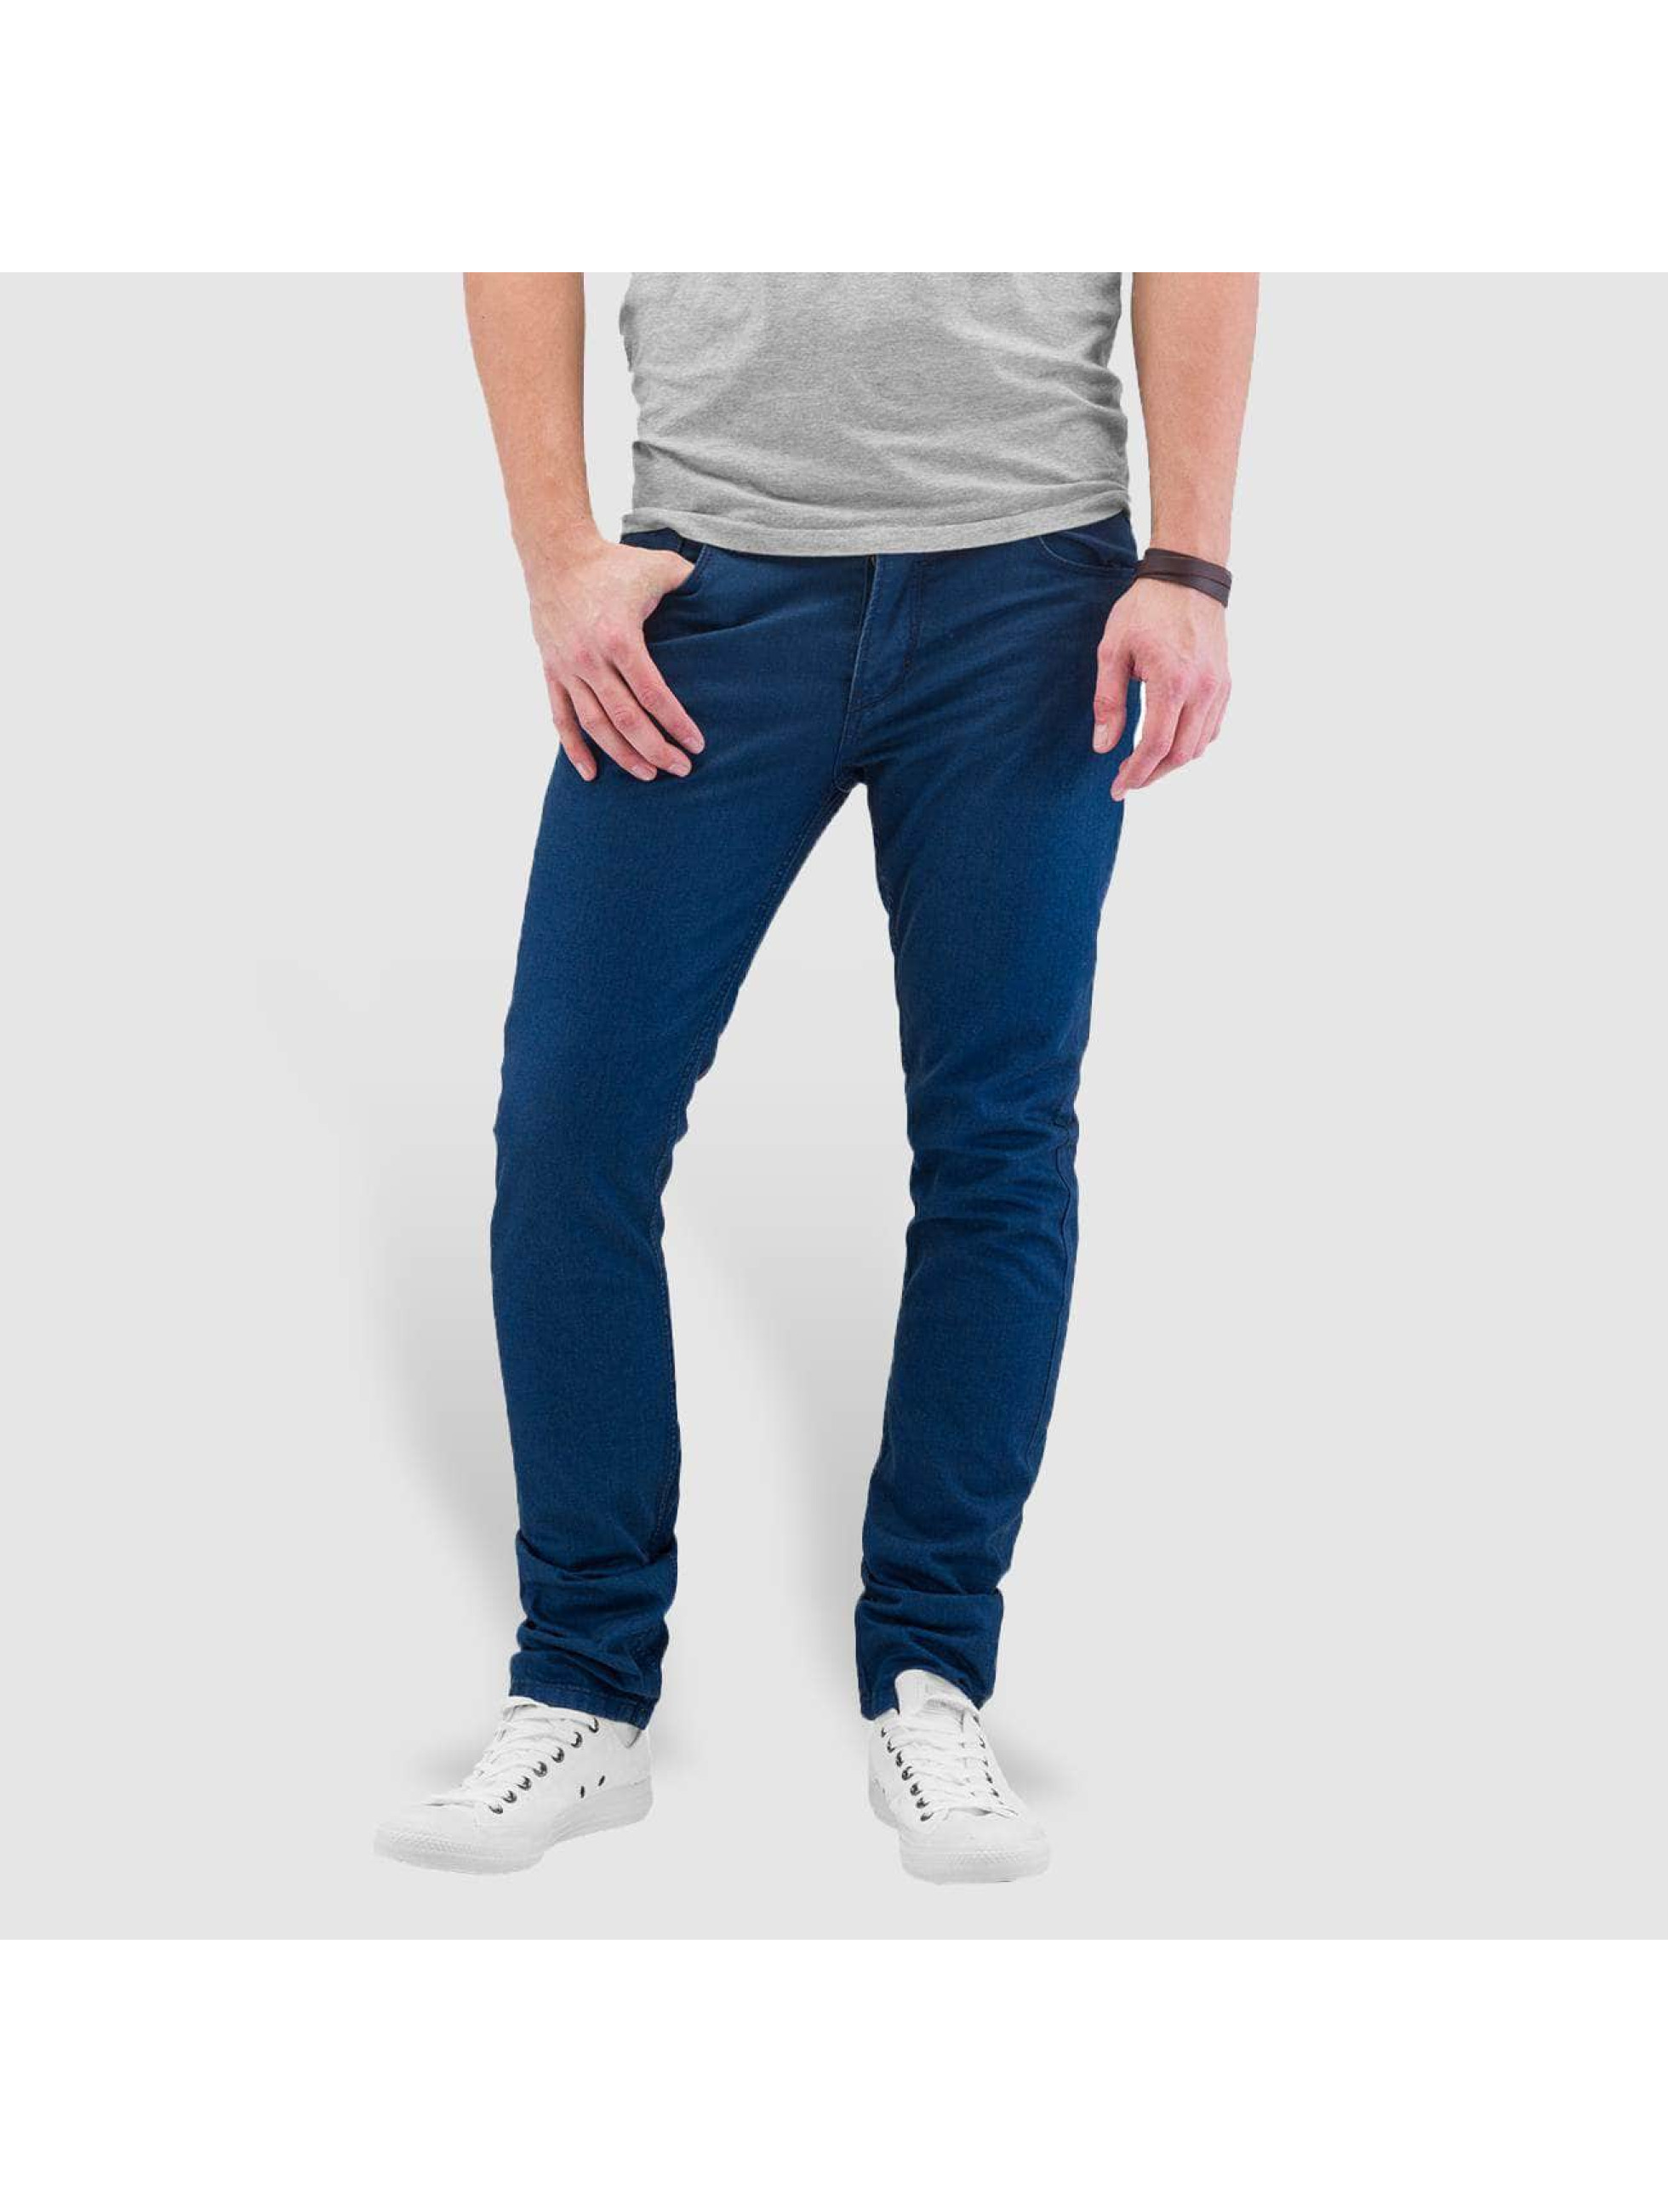 Cazzy Clang Skinny jeans Tone II blauw